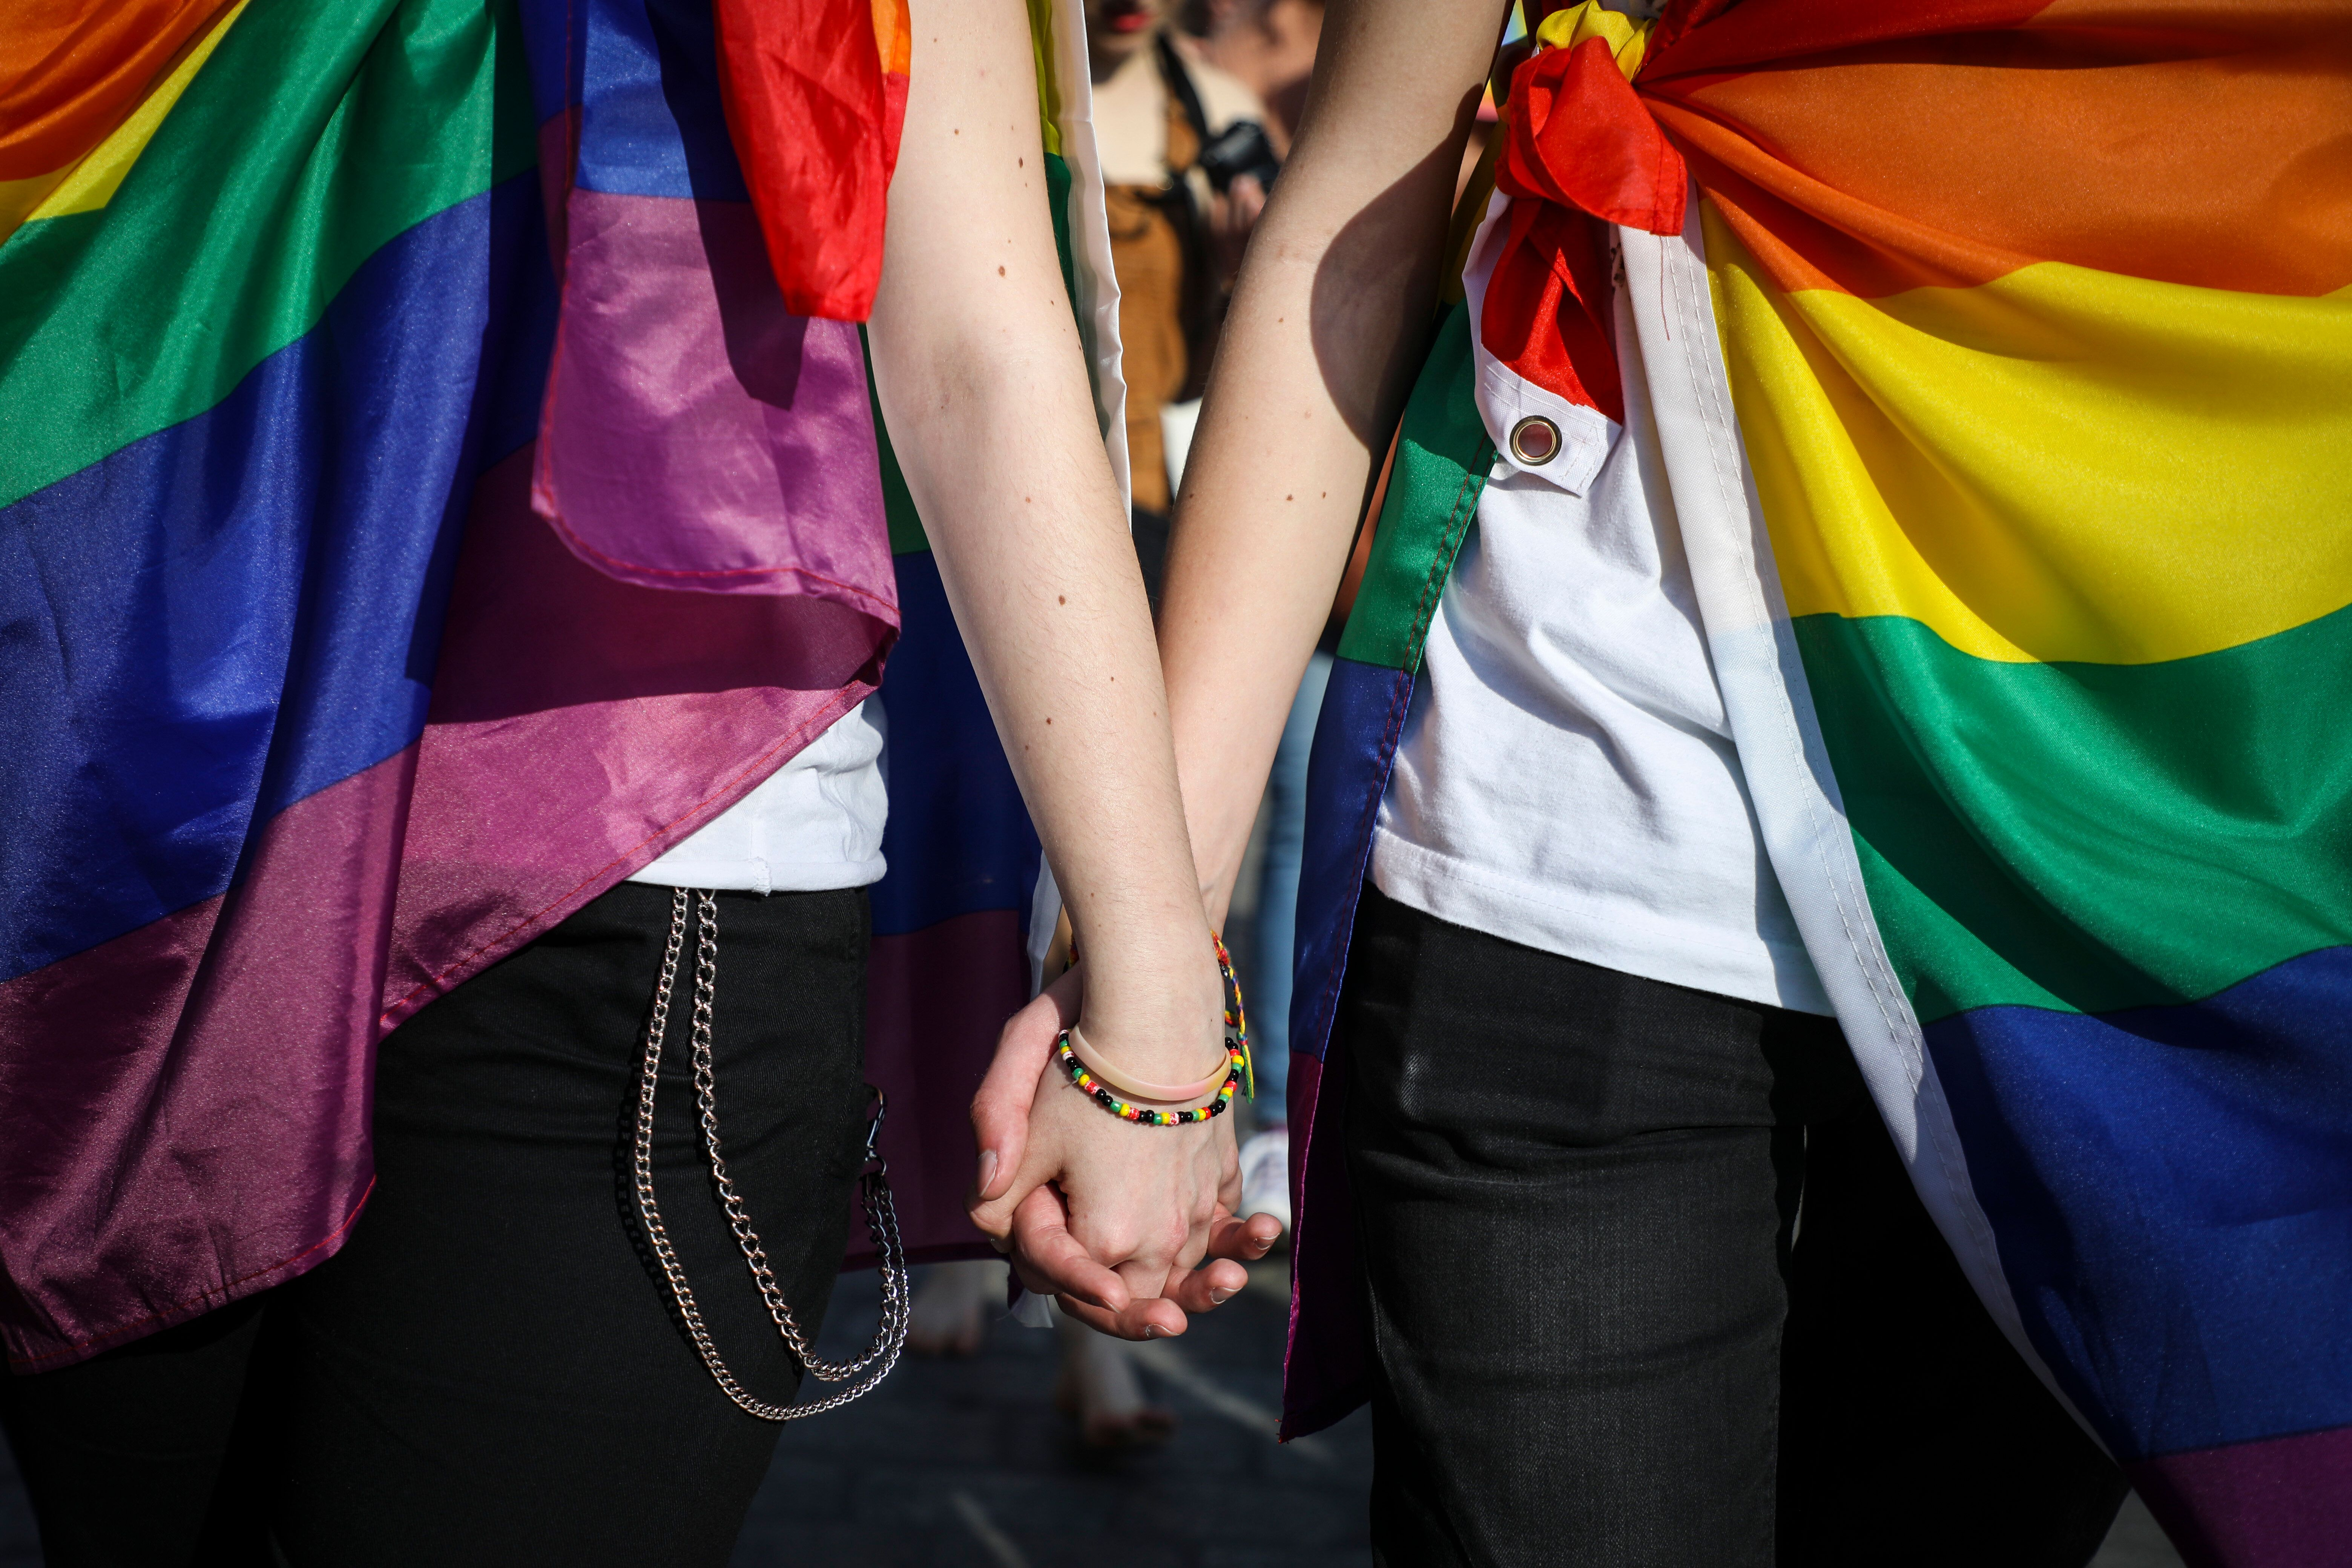 Polish Towns Go 'LGBTQ Free' Ahead Of Bitter European Election Campaign